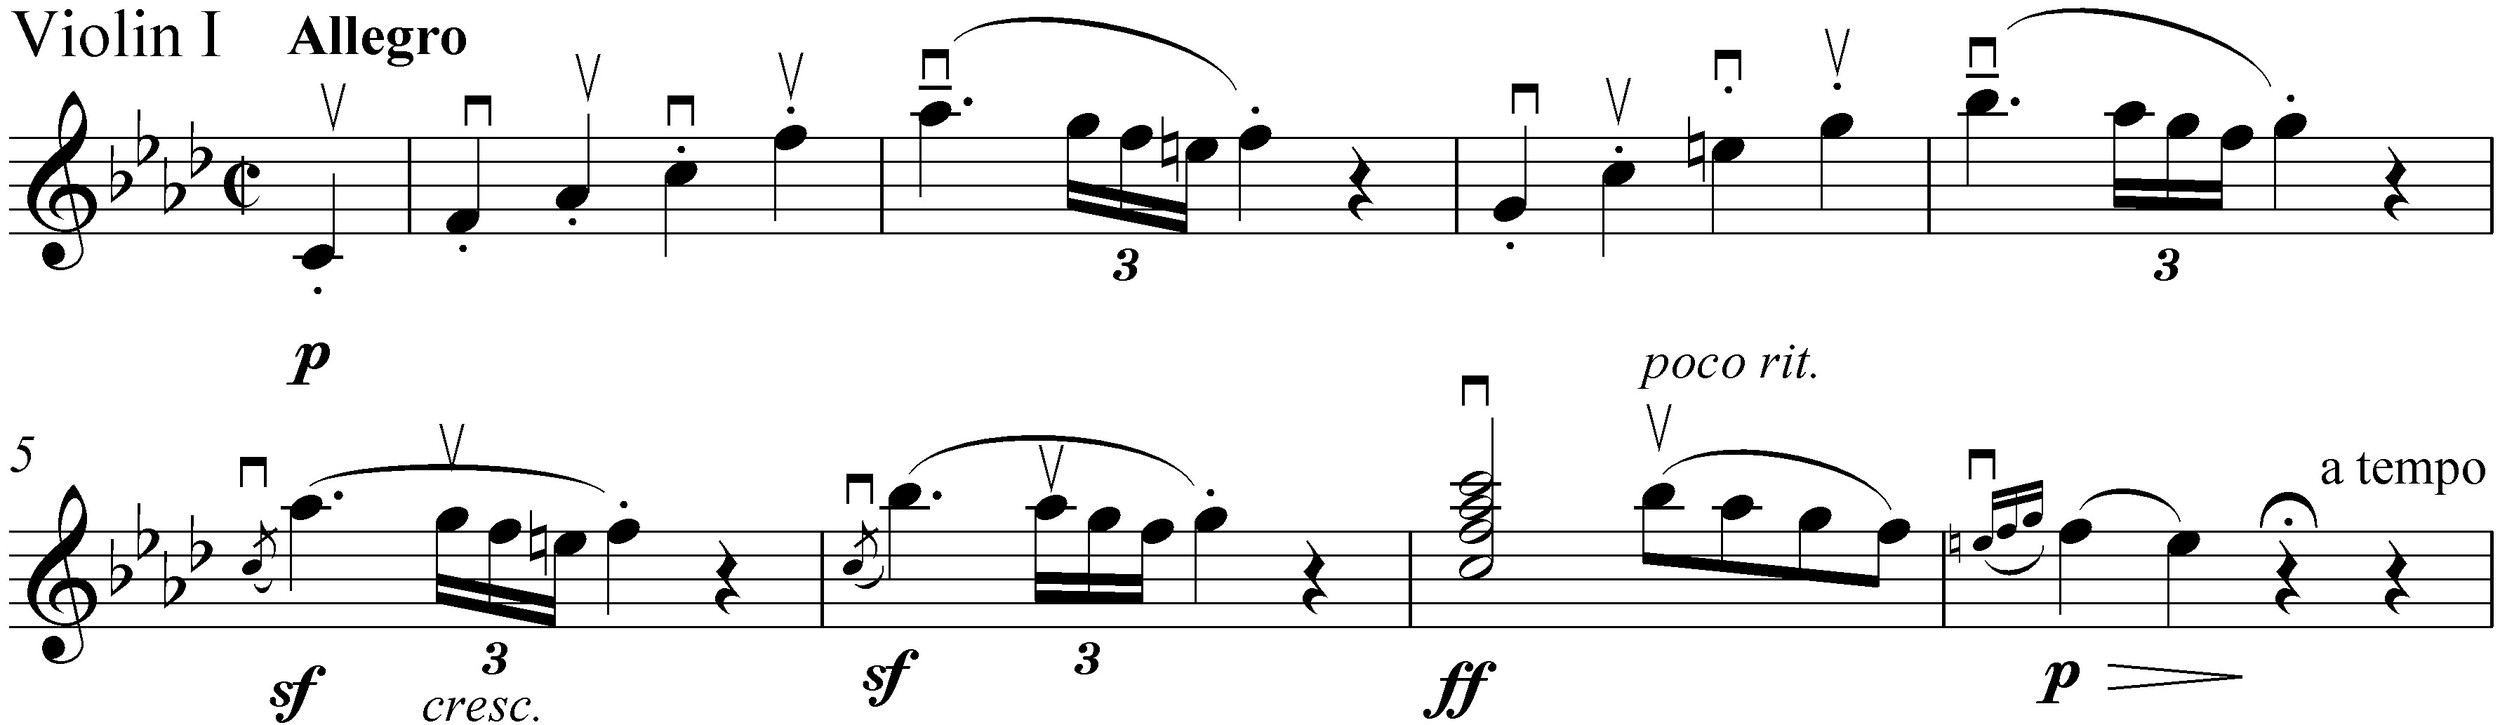 zen-and-the-art-of-piano-david-michael-wolff-variation-1-music-example-12